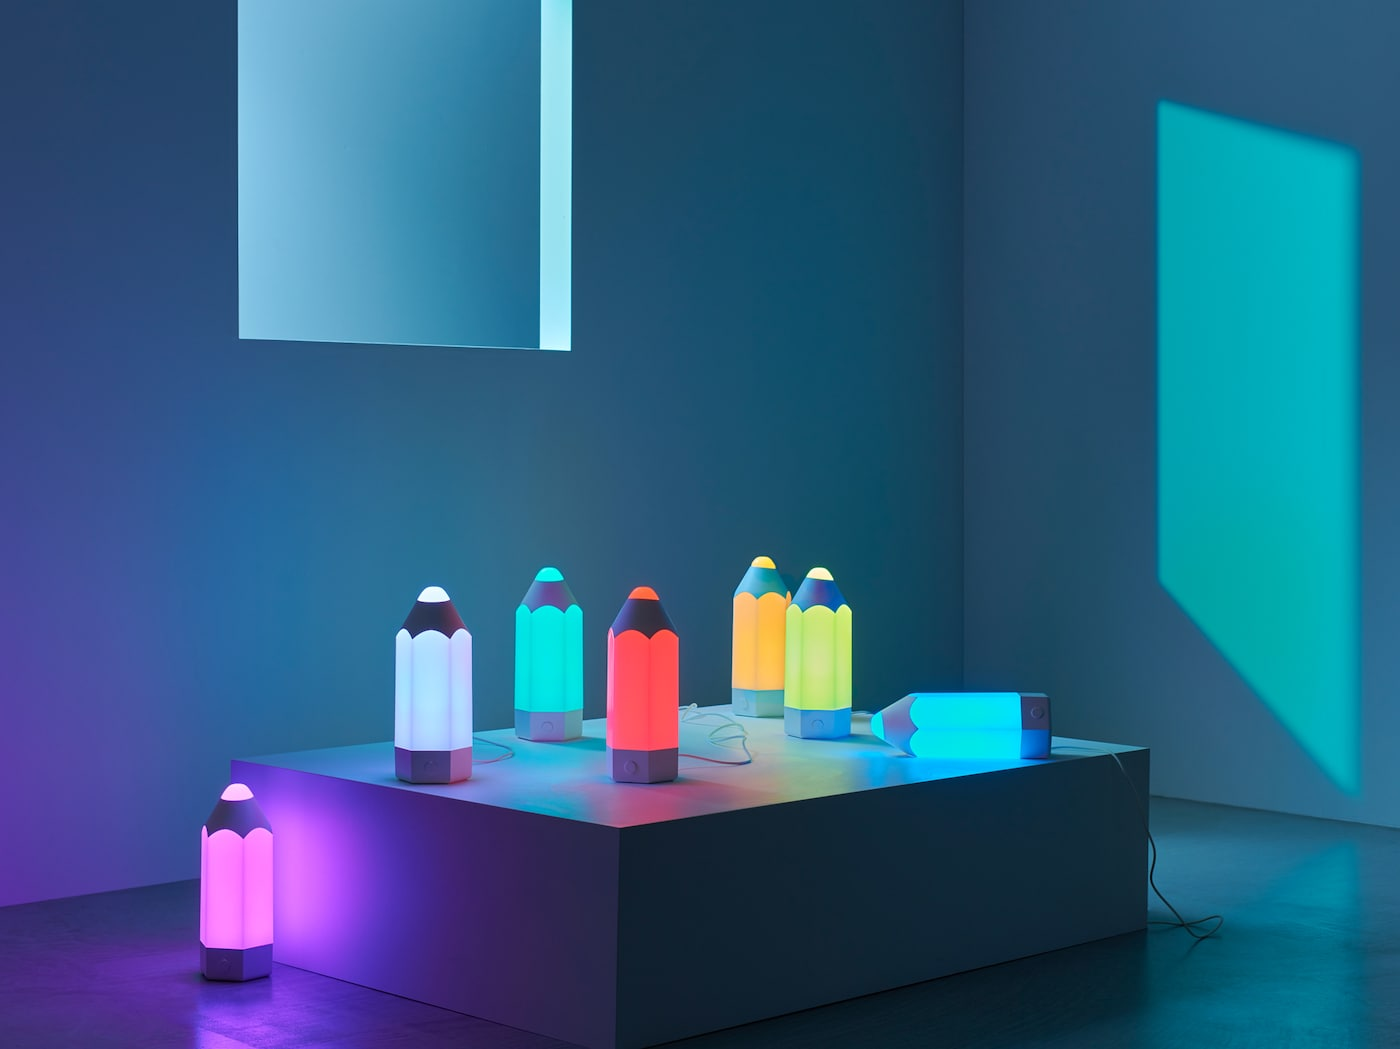 Seven PELARBOJ table lamps with a playful pencil design, showing the seven different colours of light it offers.